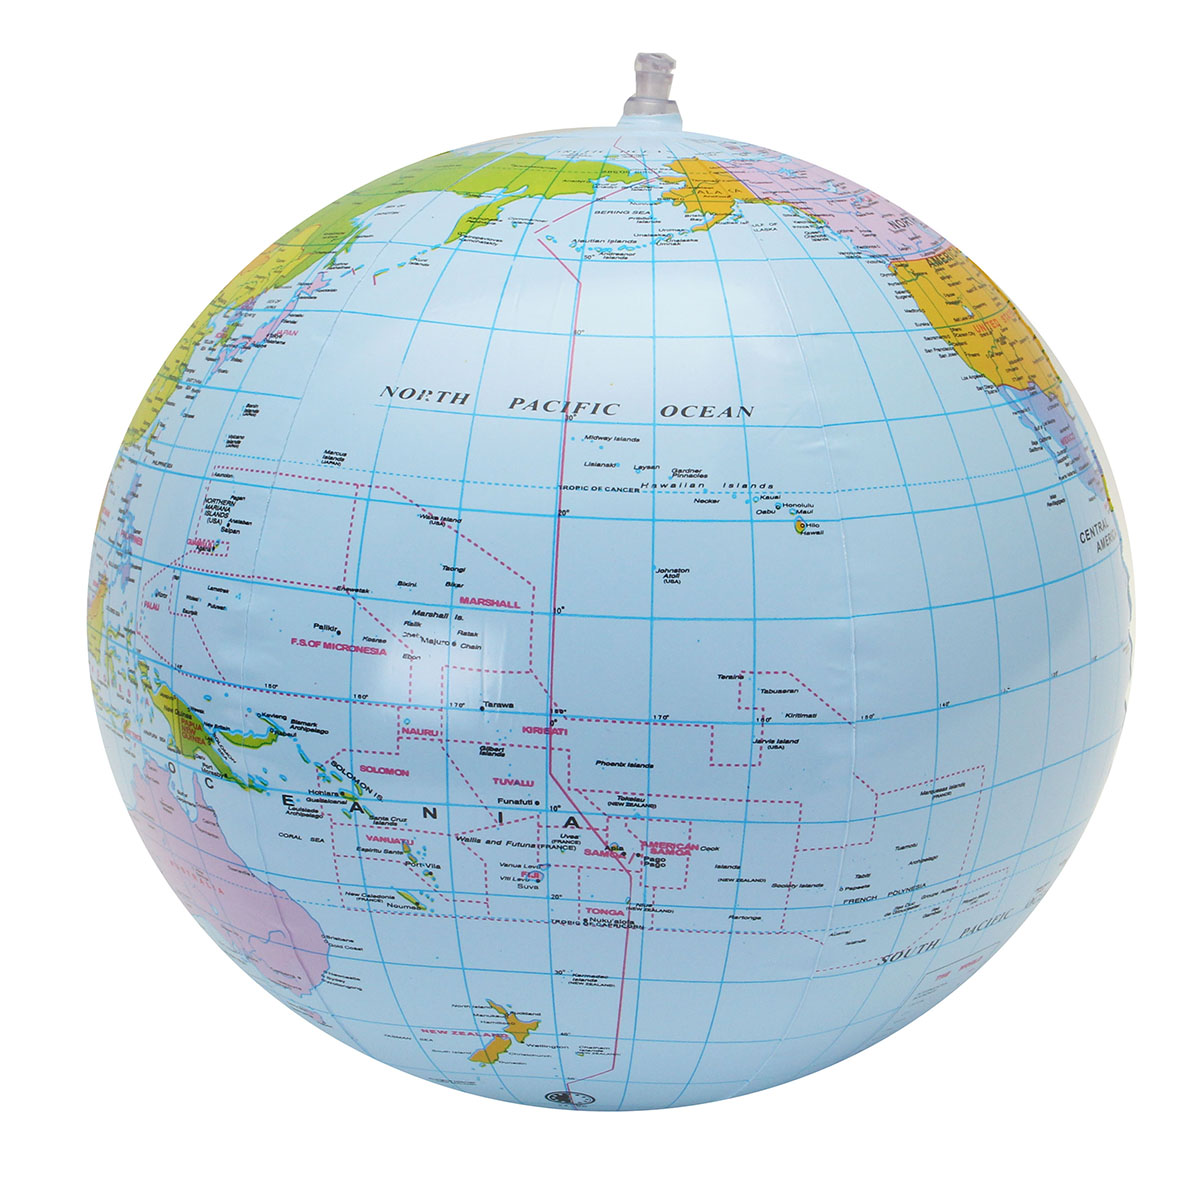 30cm Inflatable Globe World Earth Ocean Map Ball Geography Learning on